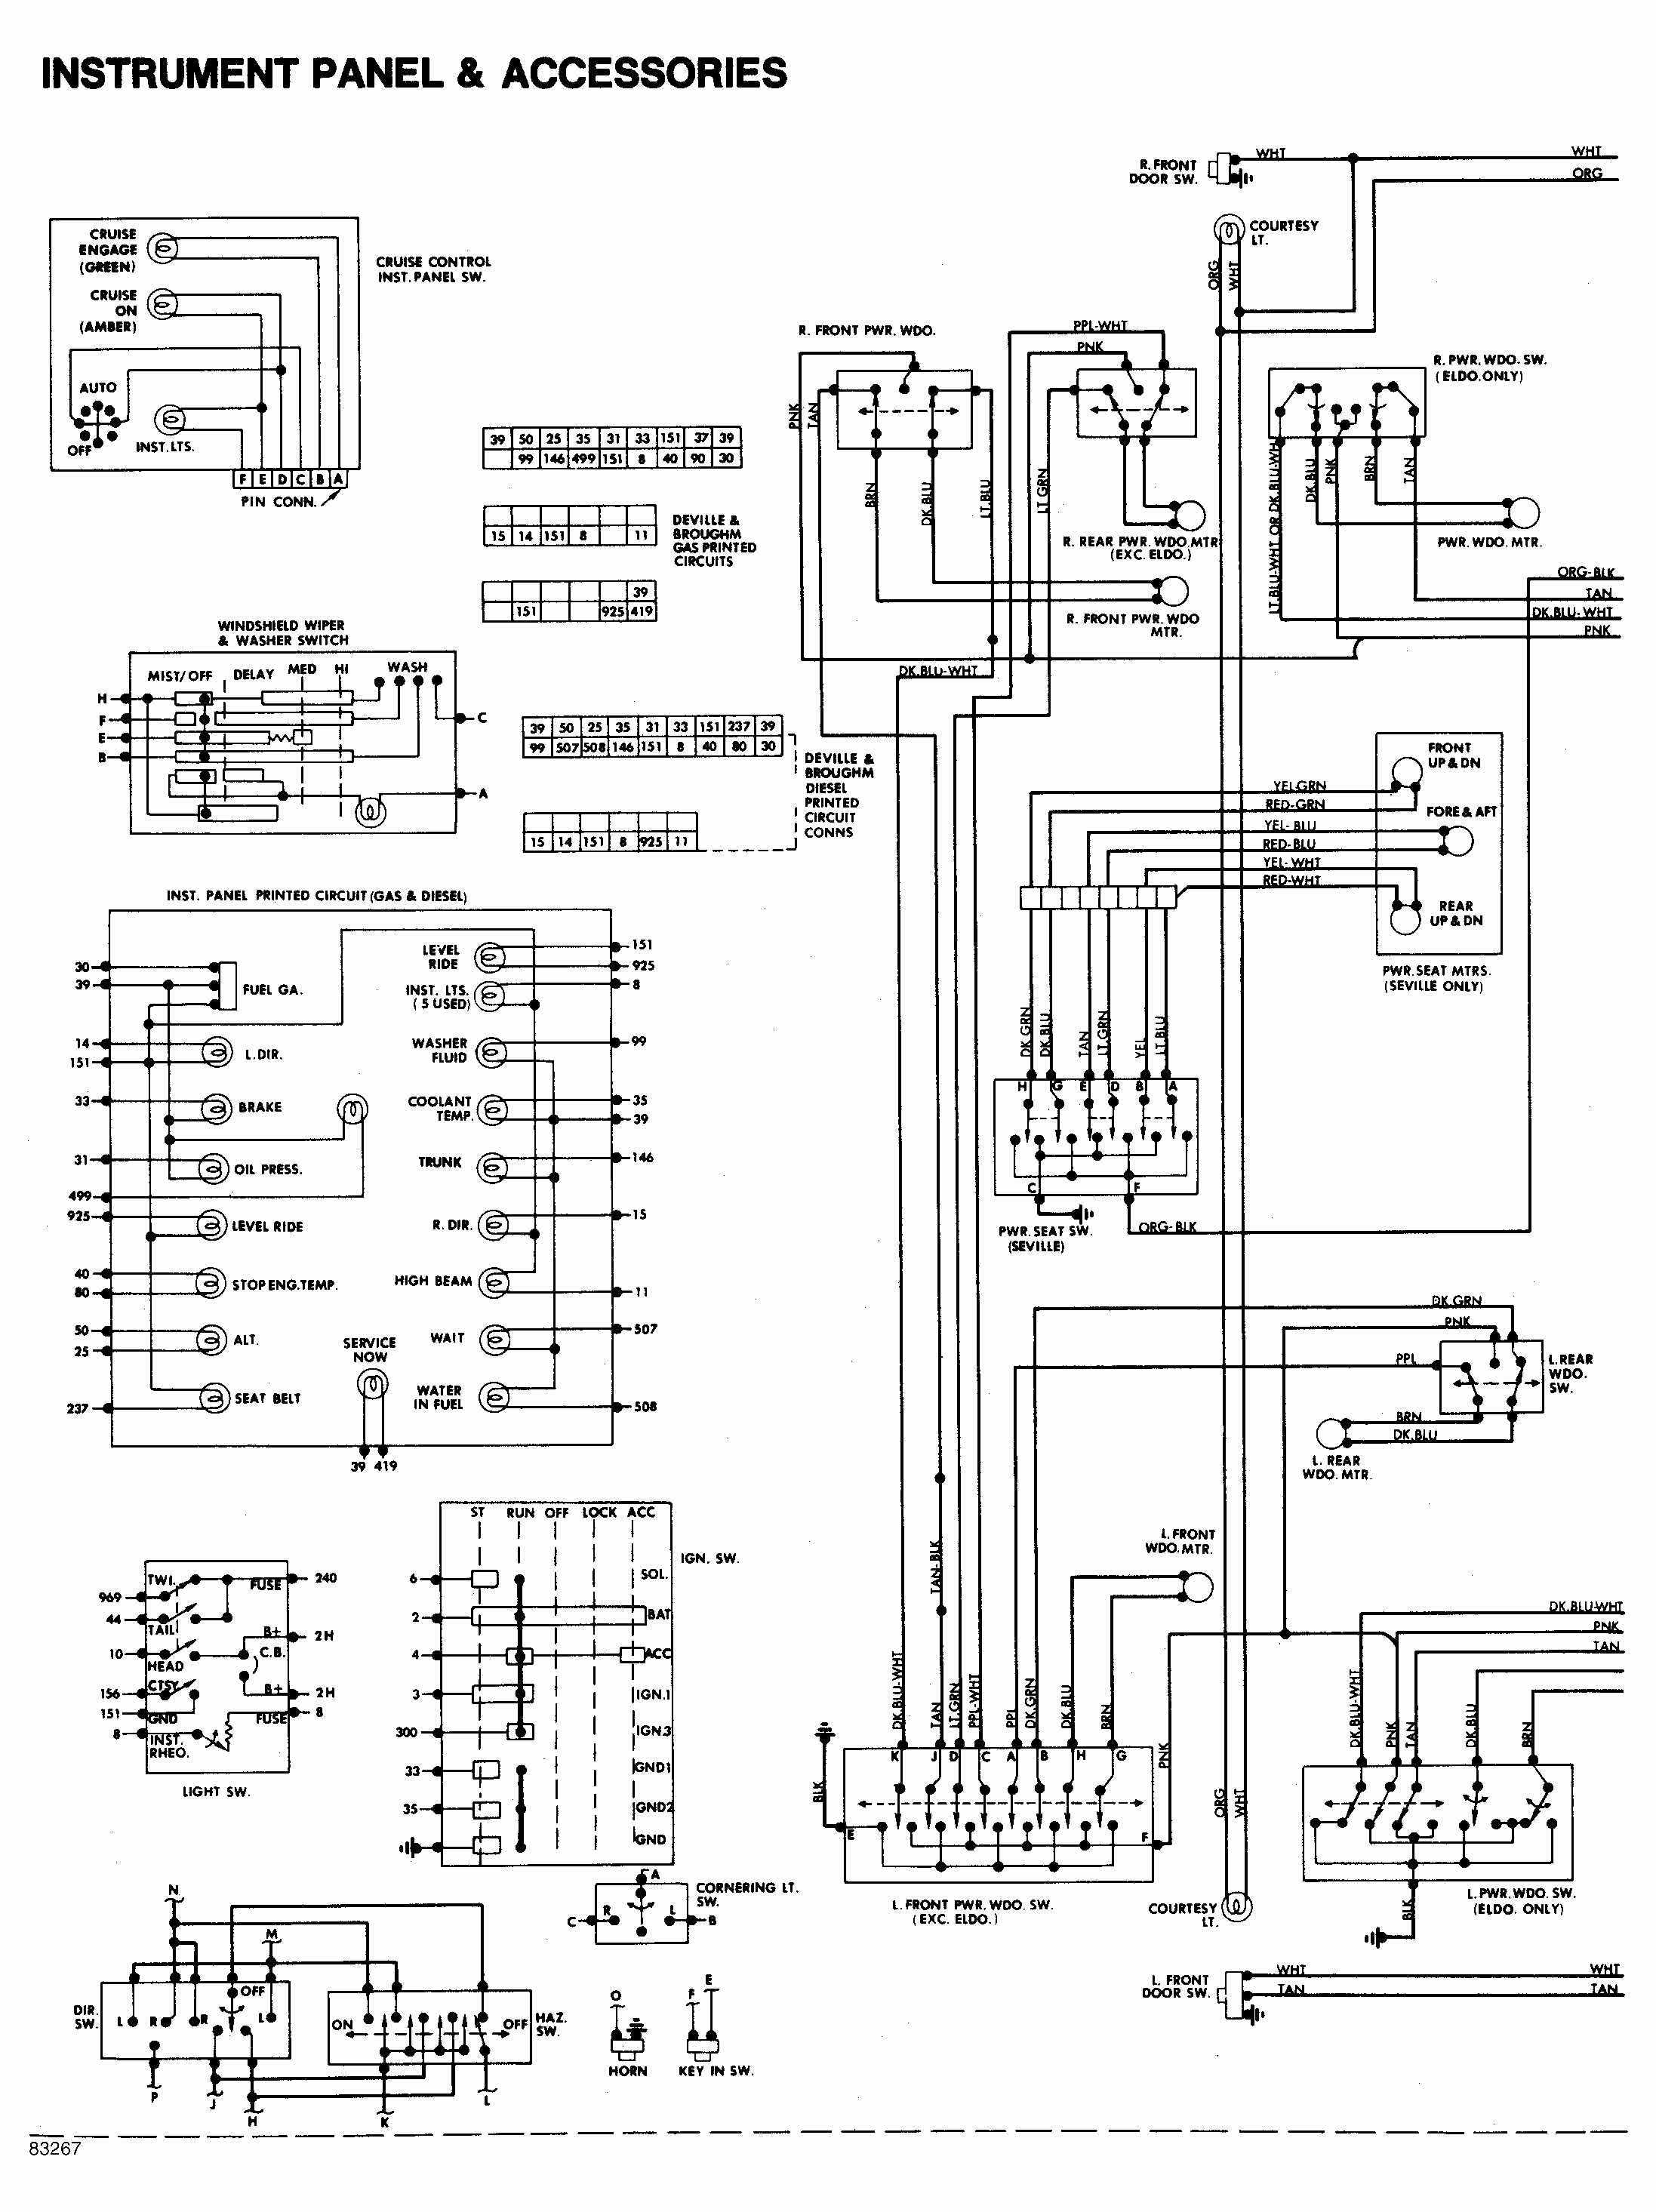 wire diagram for 1995 cadillac sedan deville wiring diagram table 1995 cadillac sedan deville stereo wiring diagram 1995 cadillac deville wiring diagram #2